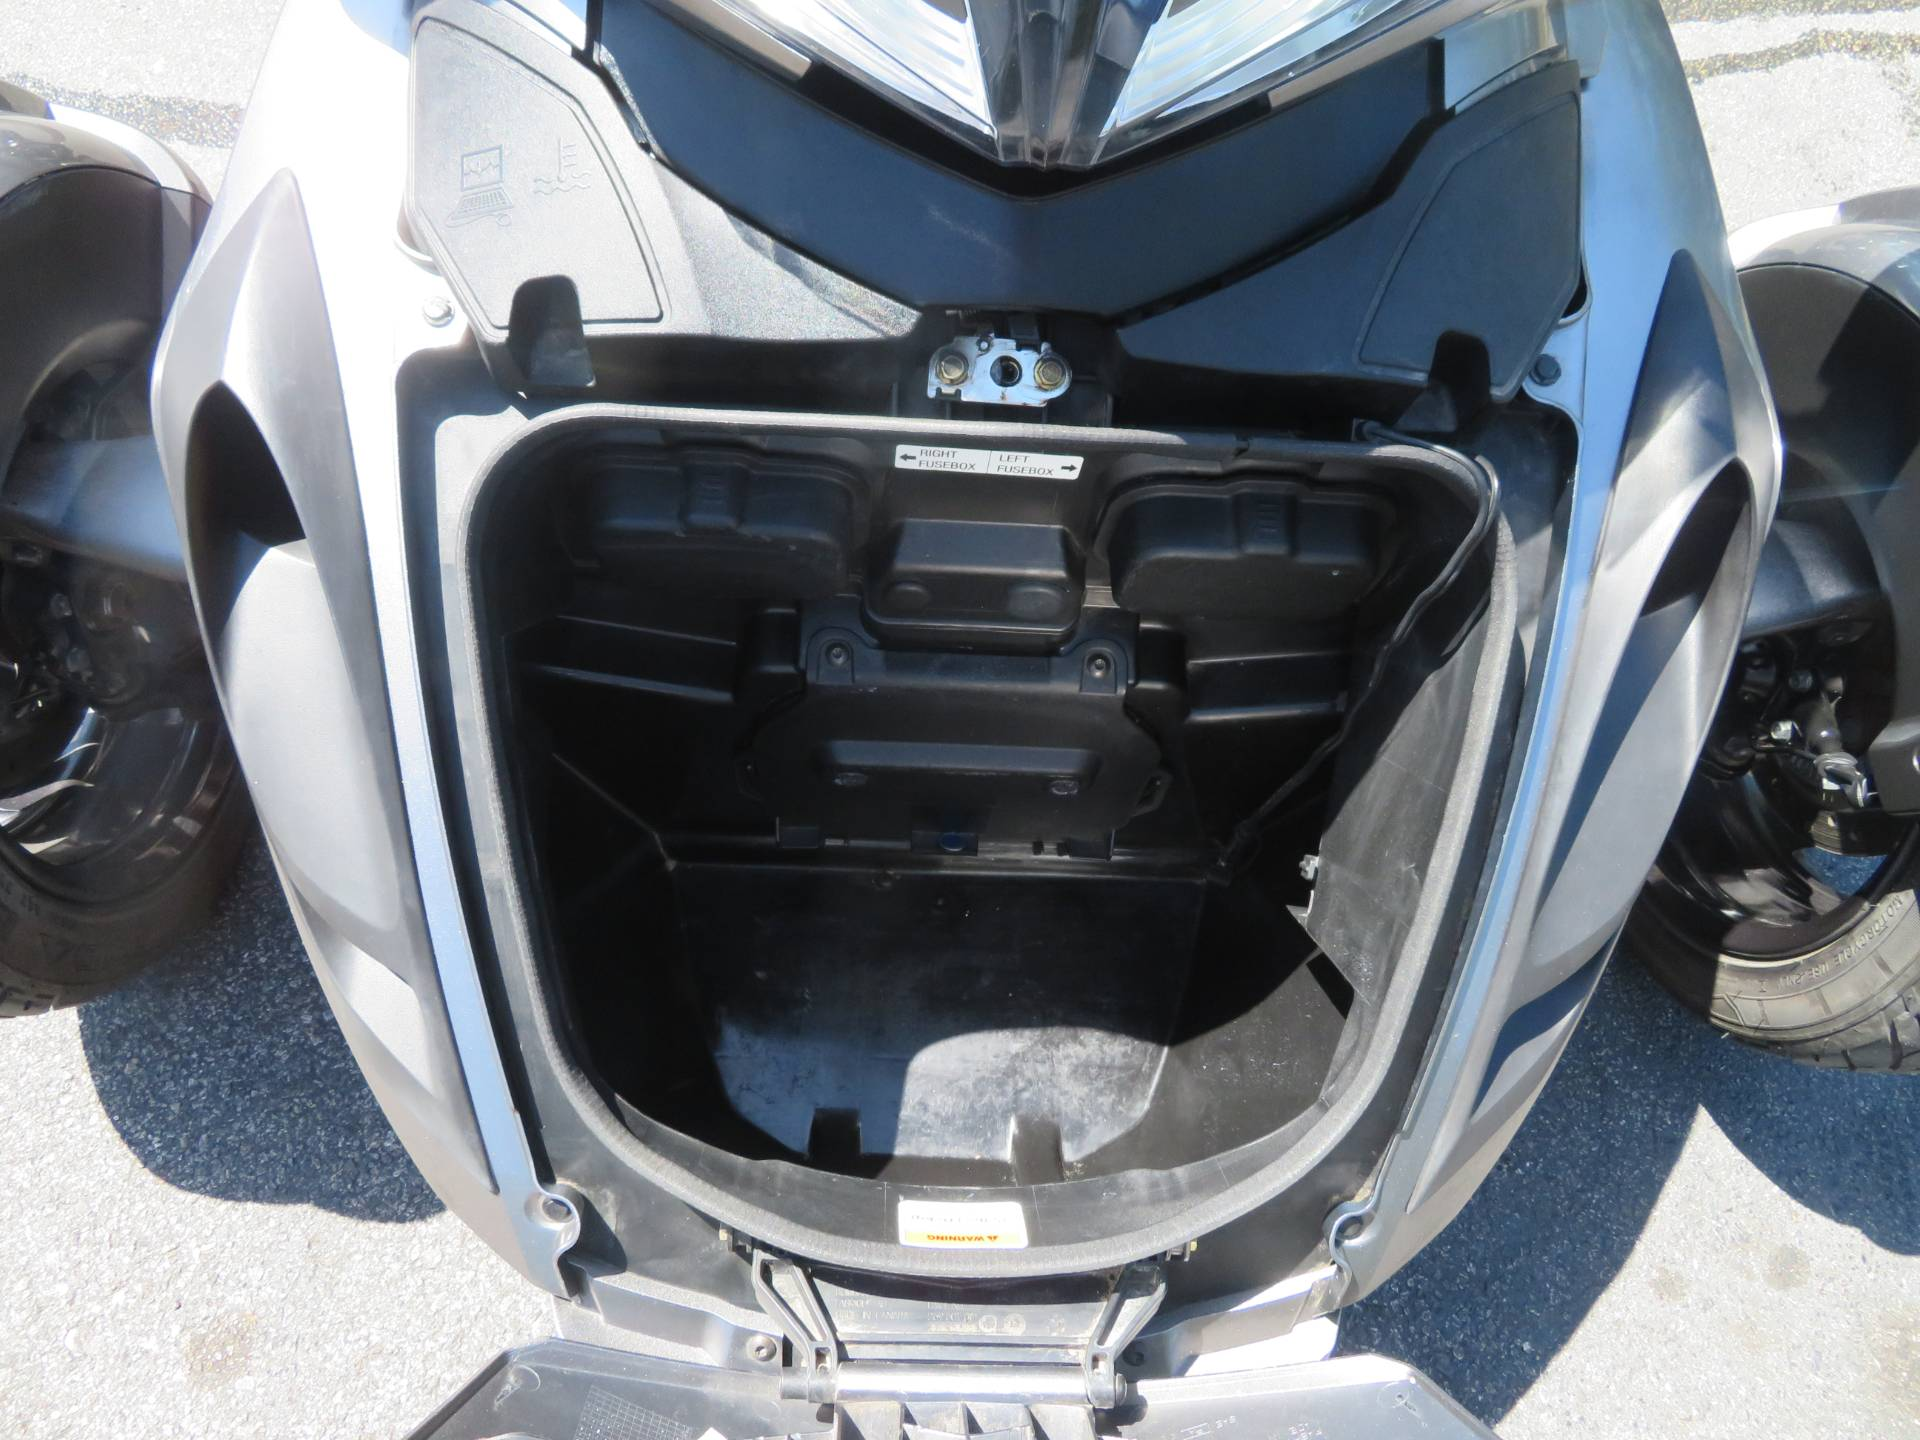 2013 Can-Am Spyder® ST-S SE5 in Sanford, Florida - Photo 30